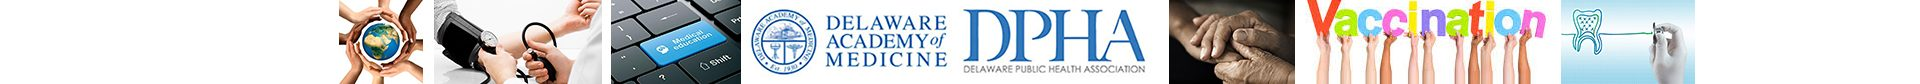 Delaware Mini Medical School